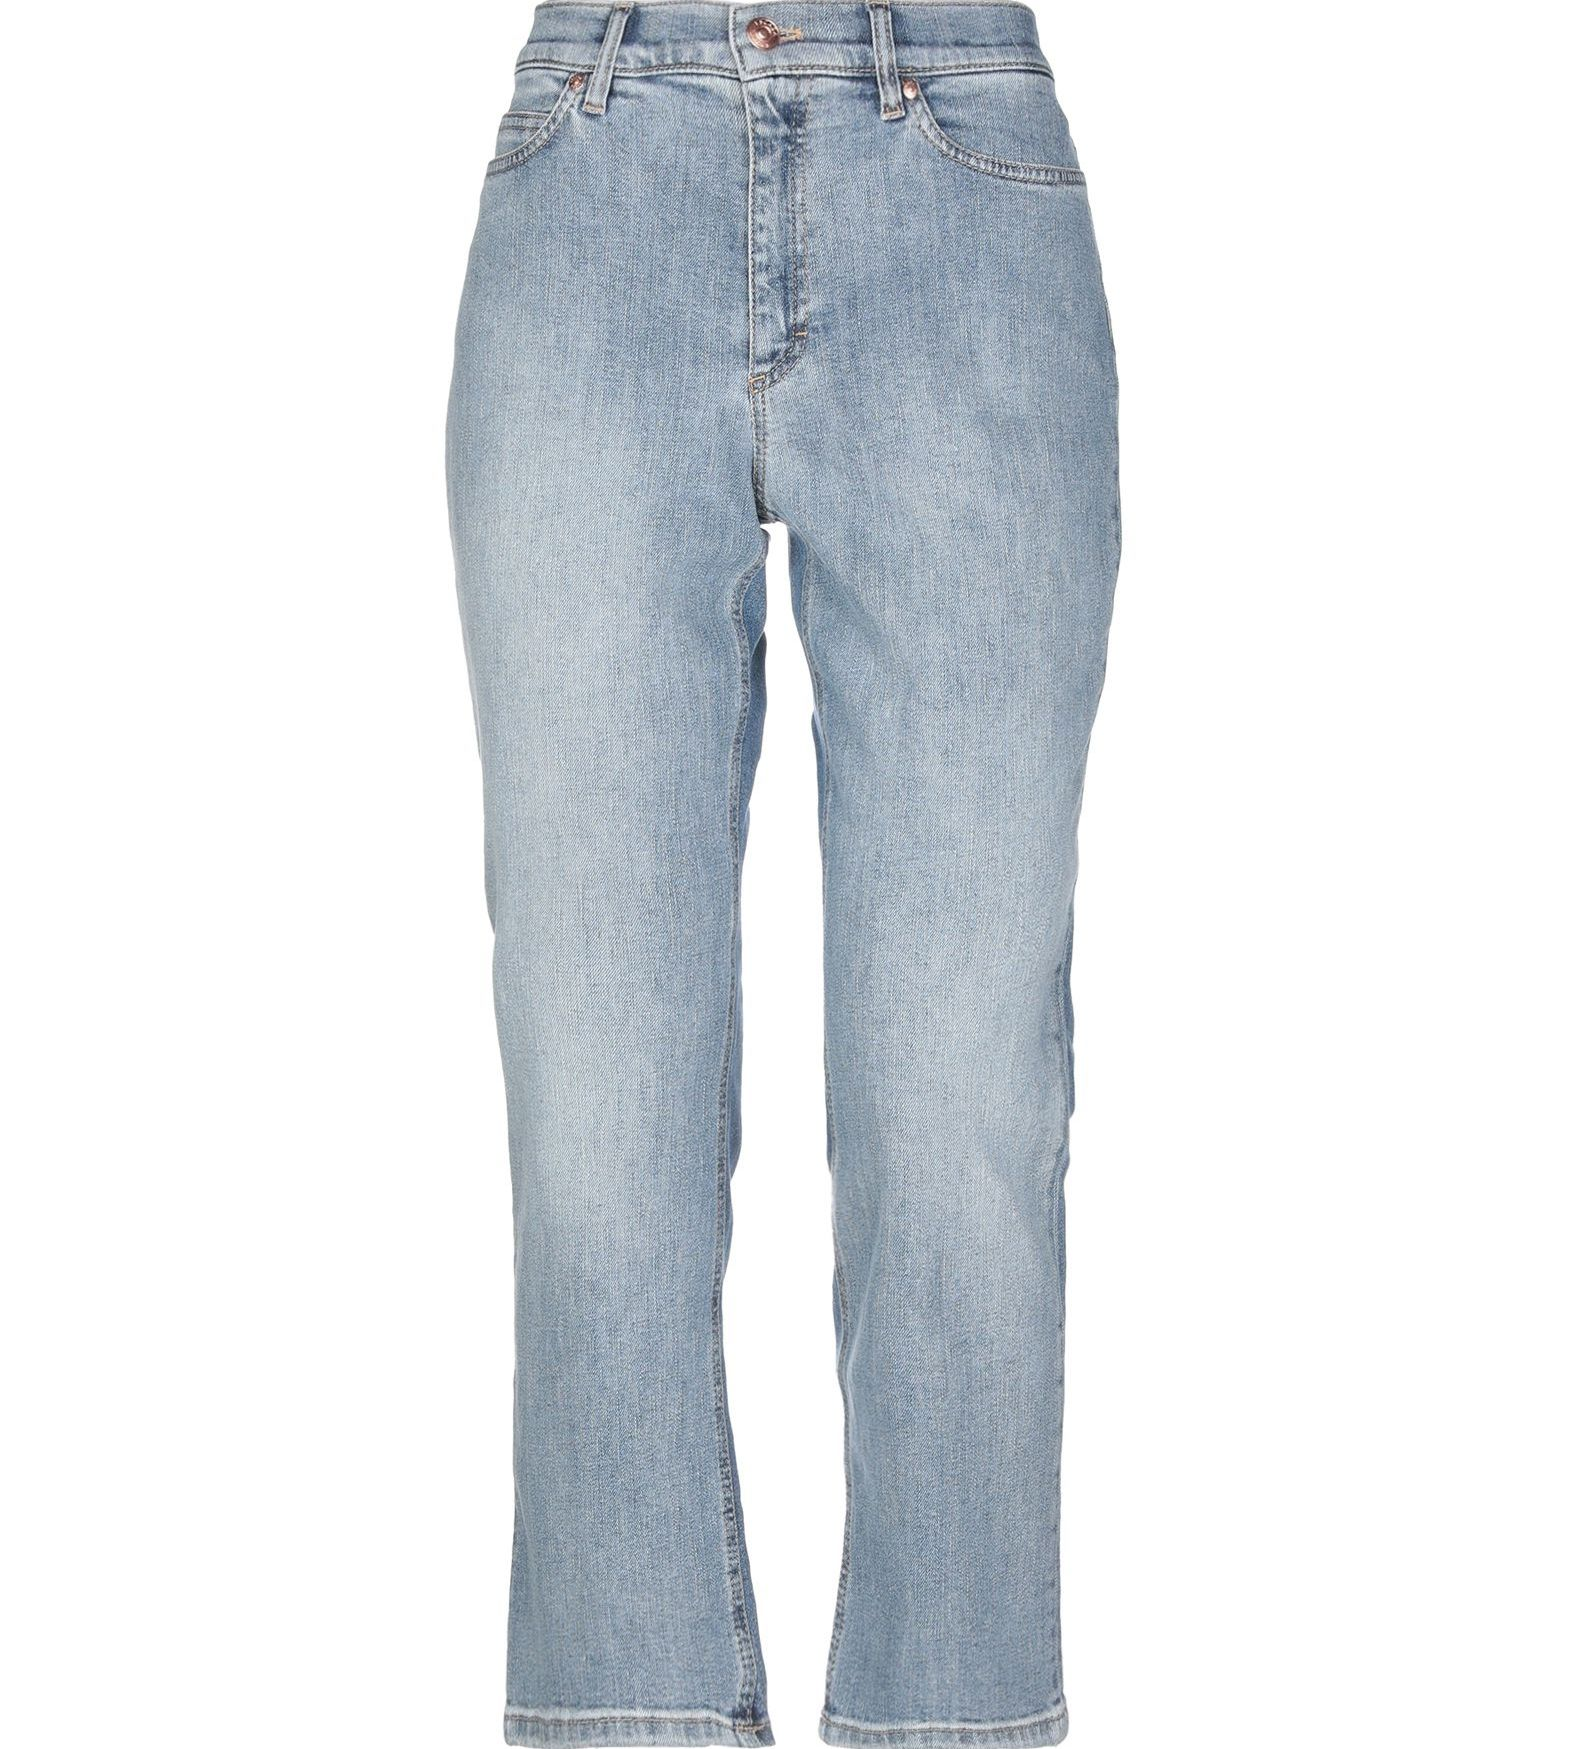 ESCADA SPORT DENIM Τζιν